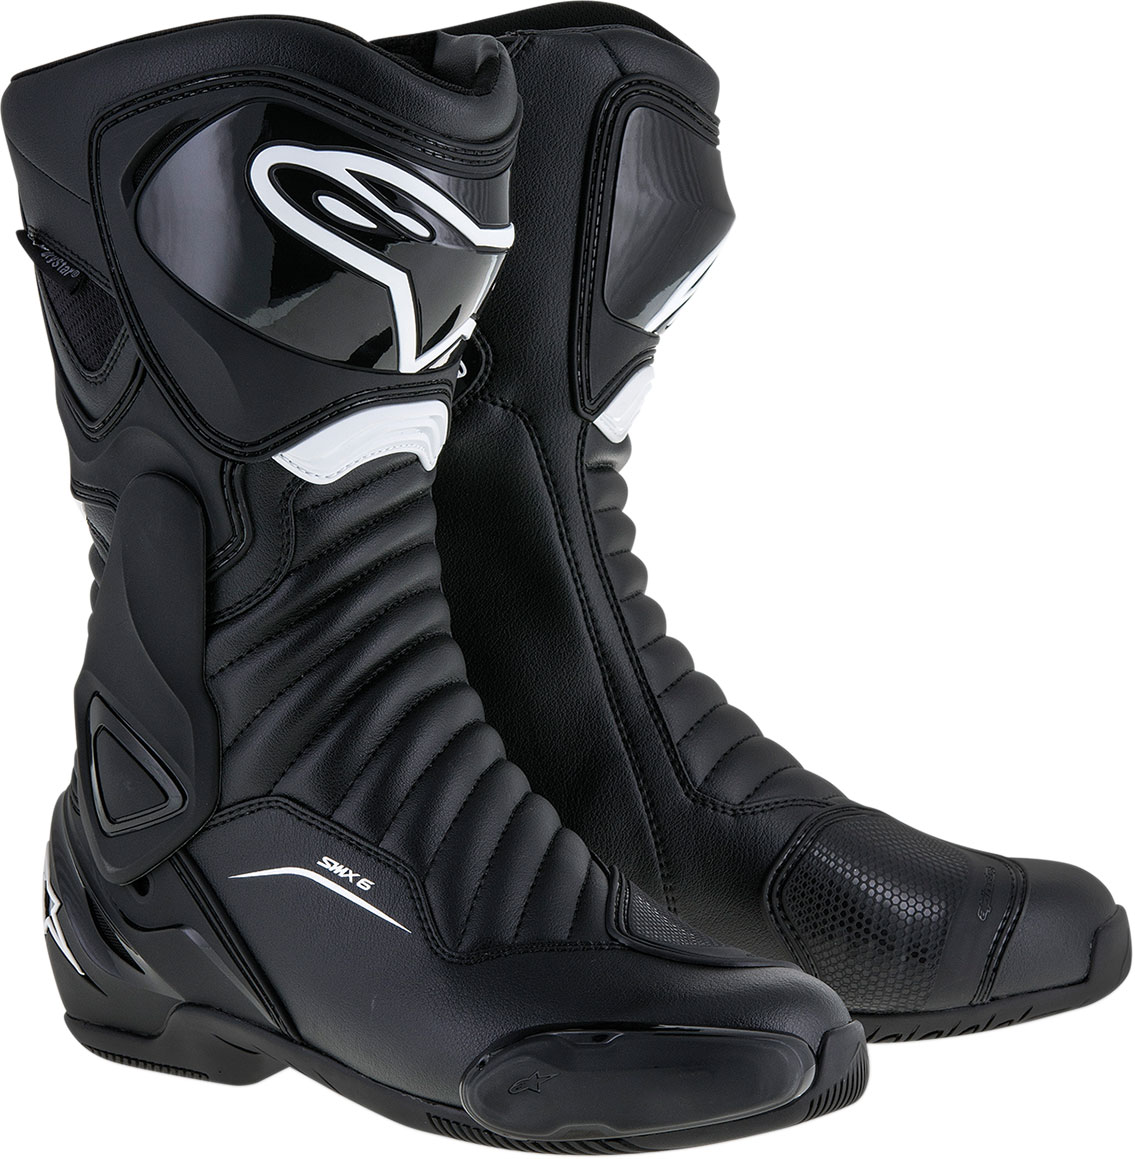 Alpinestars SMX-6 V2 Waterproof Road/Track Motorcycle Boots (Black)